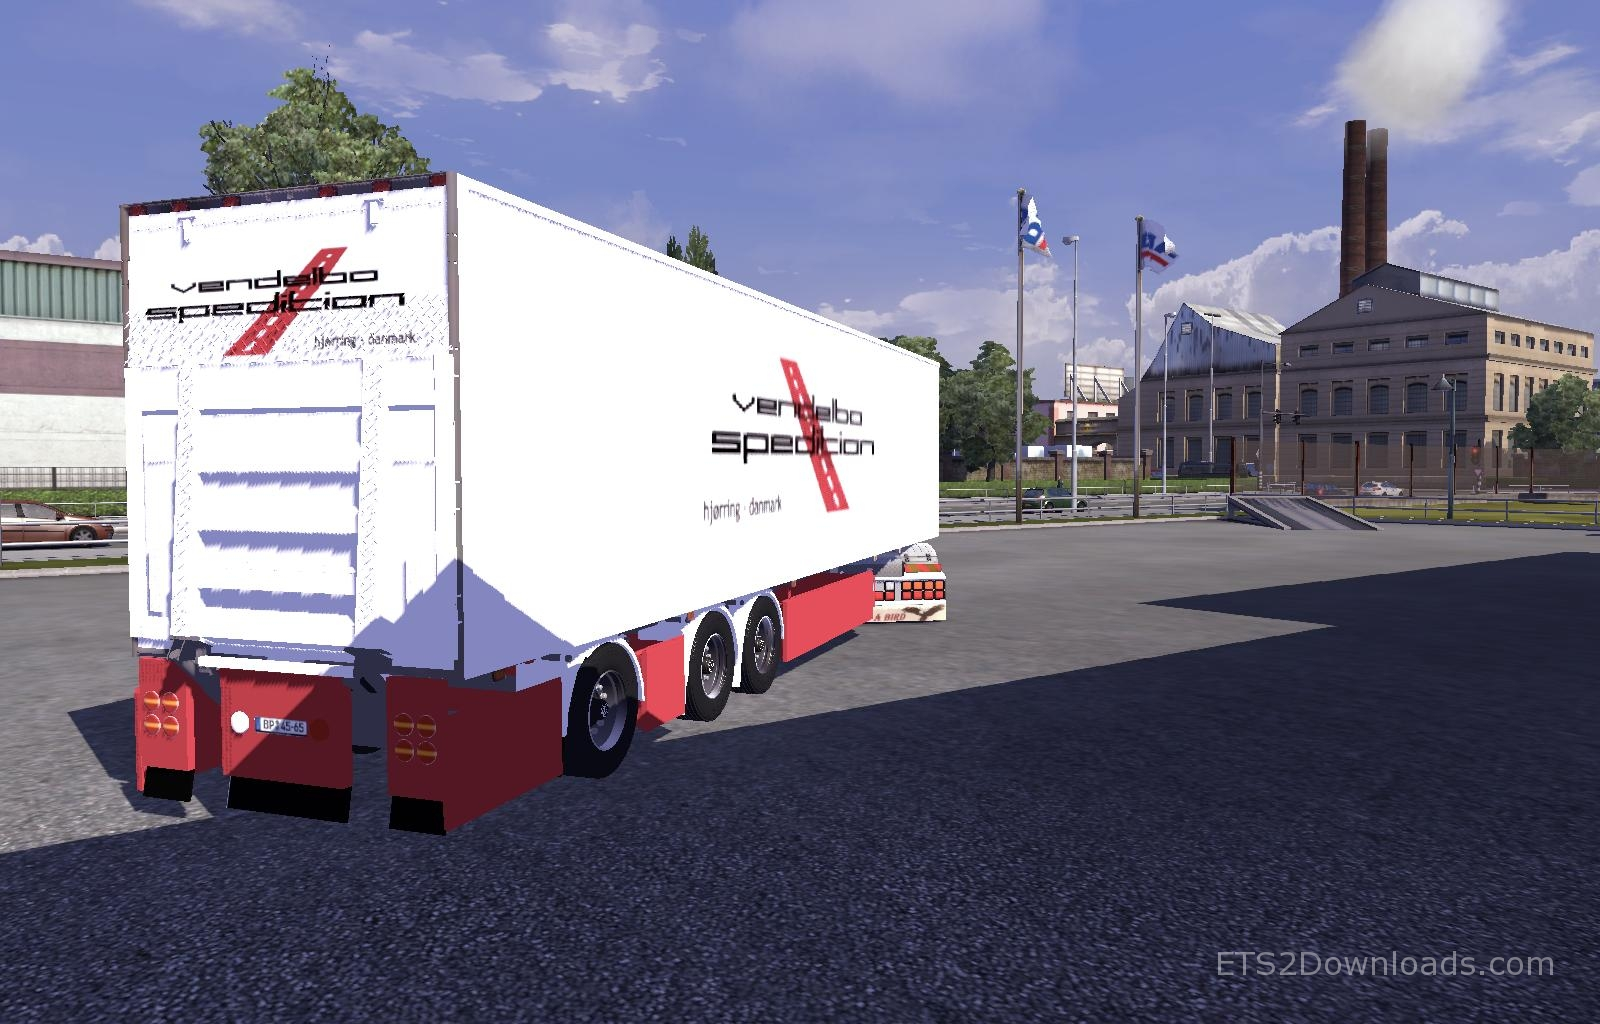 vendelbo-spedition-trailer-ets2-2